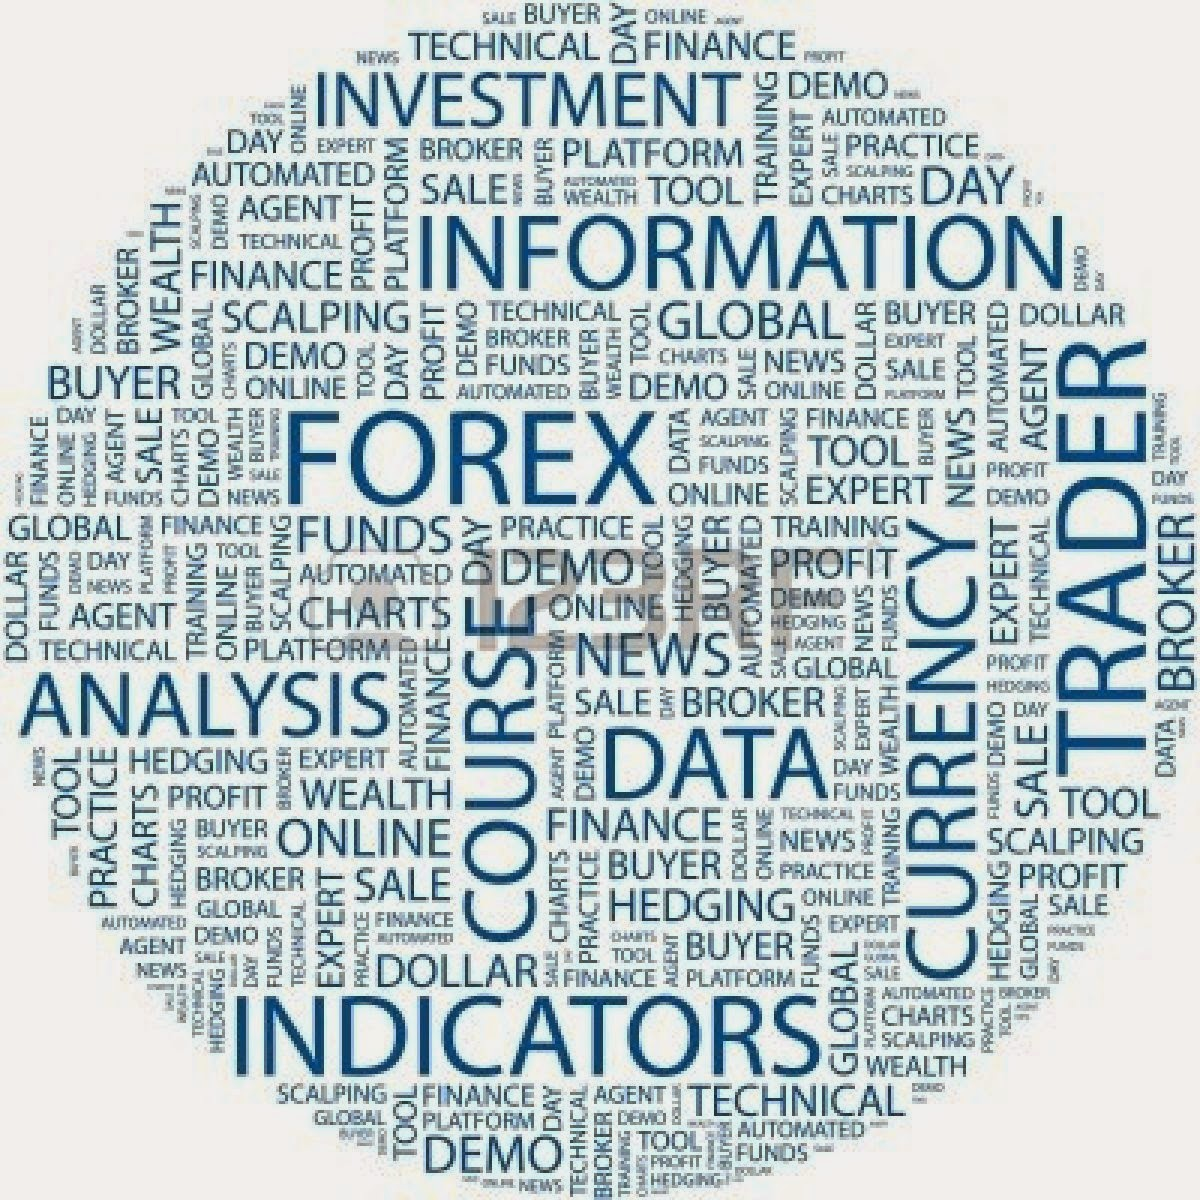 Fundamental Analysis-Section I: Introduction|www.adityatrading.in|Forex Trading Autochartist, Forex Autochartist, Forex Autochartist India|bhopal.evenforex.in